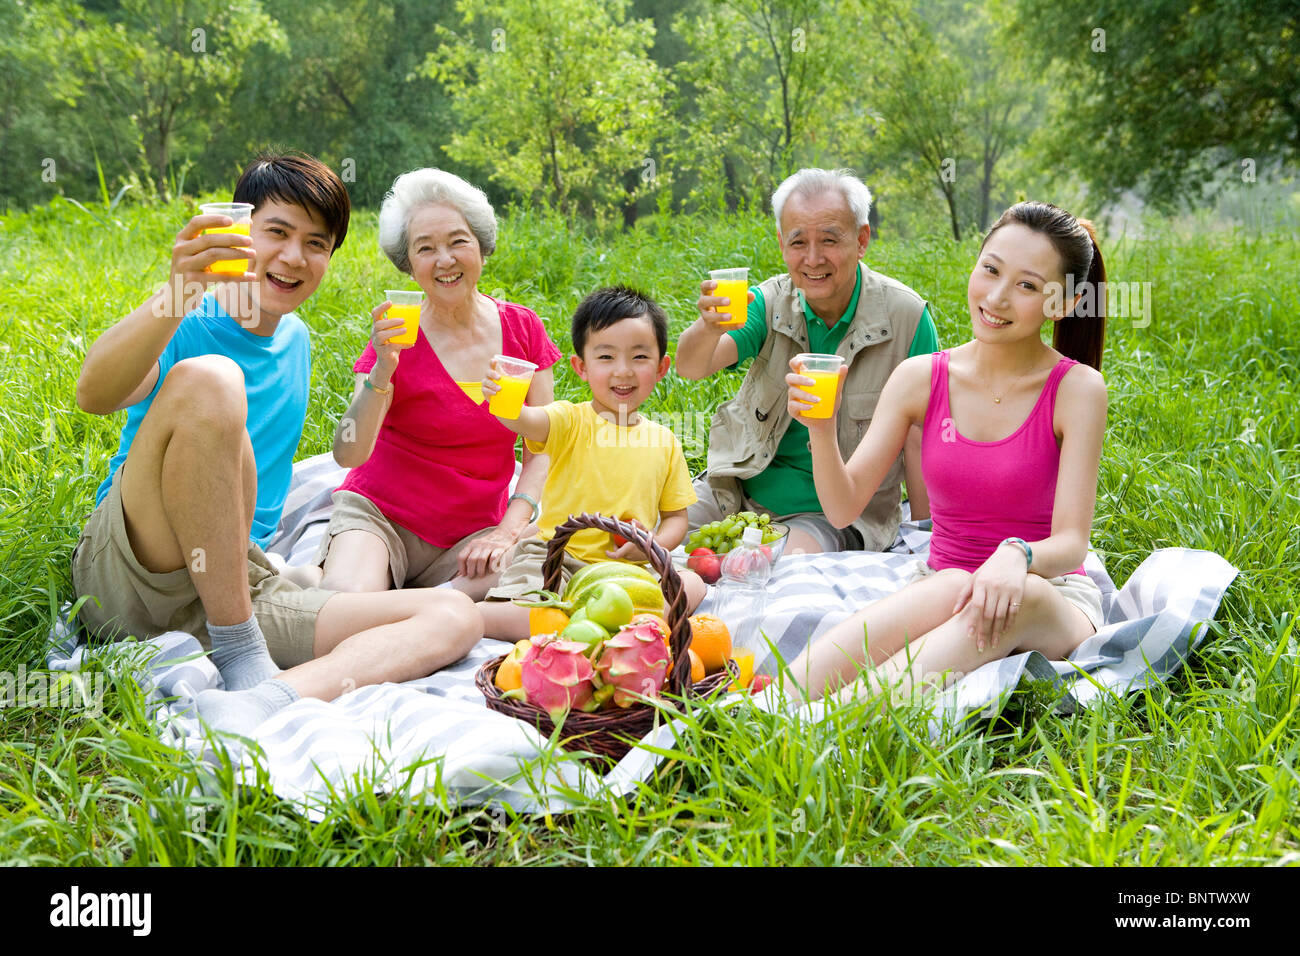 Portrait of a family picnicking - Stock Image